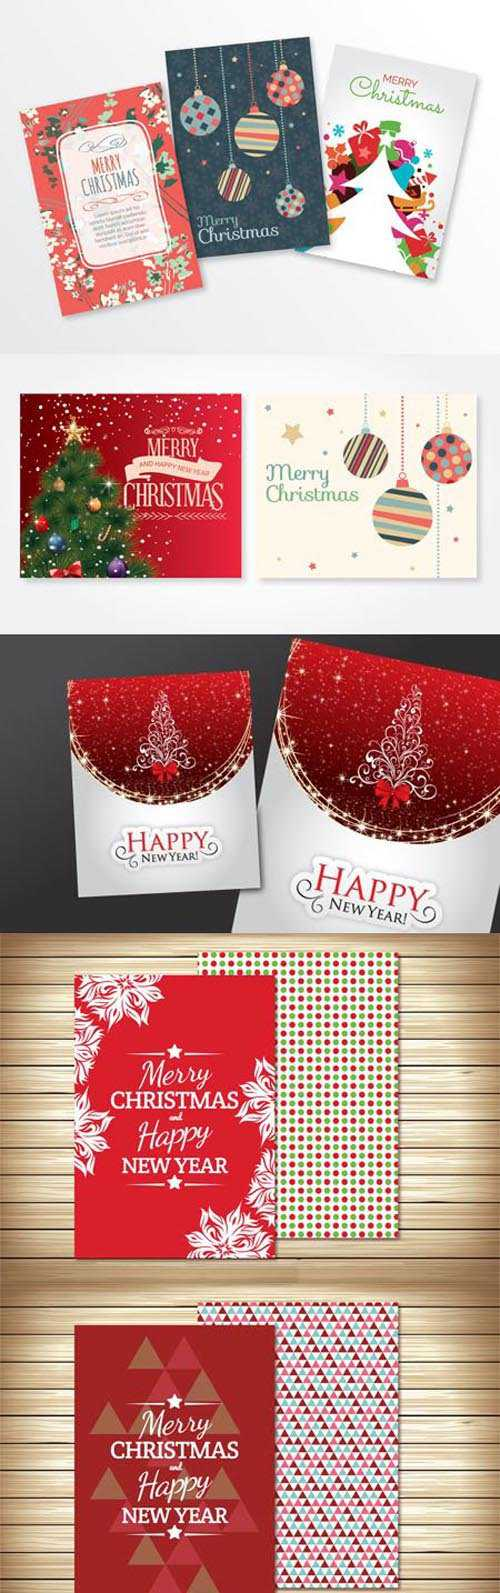 Christmas & Happy New Year! Greeting Cards 5